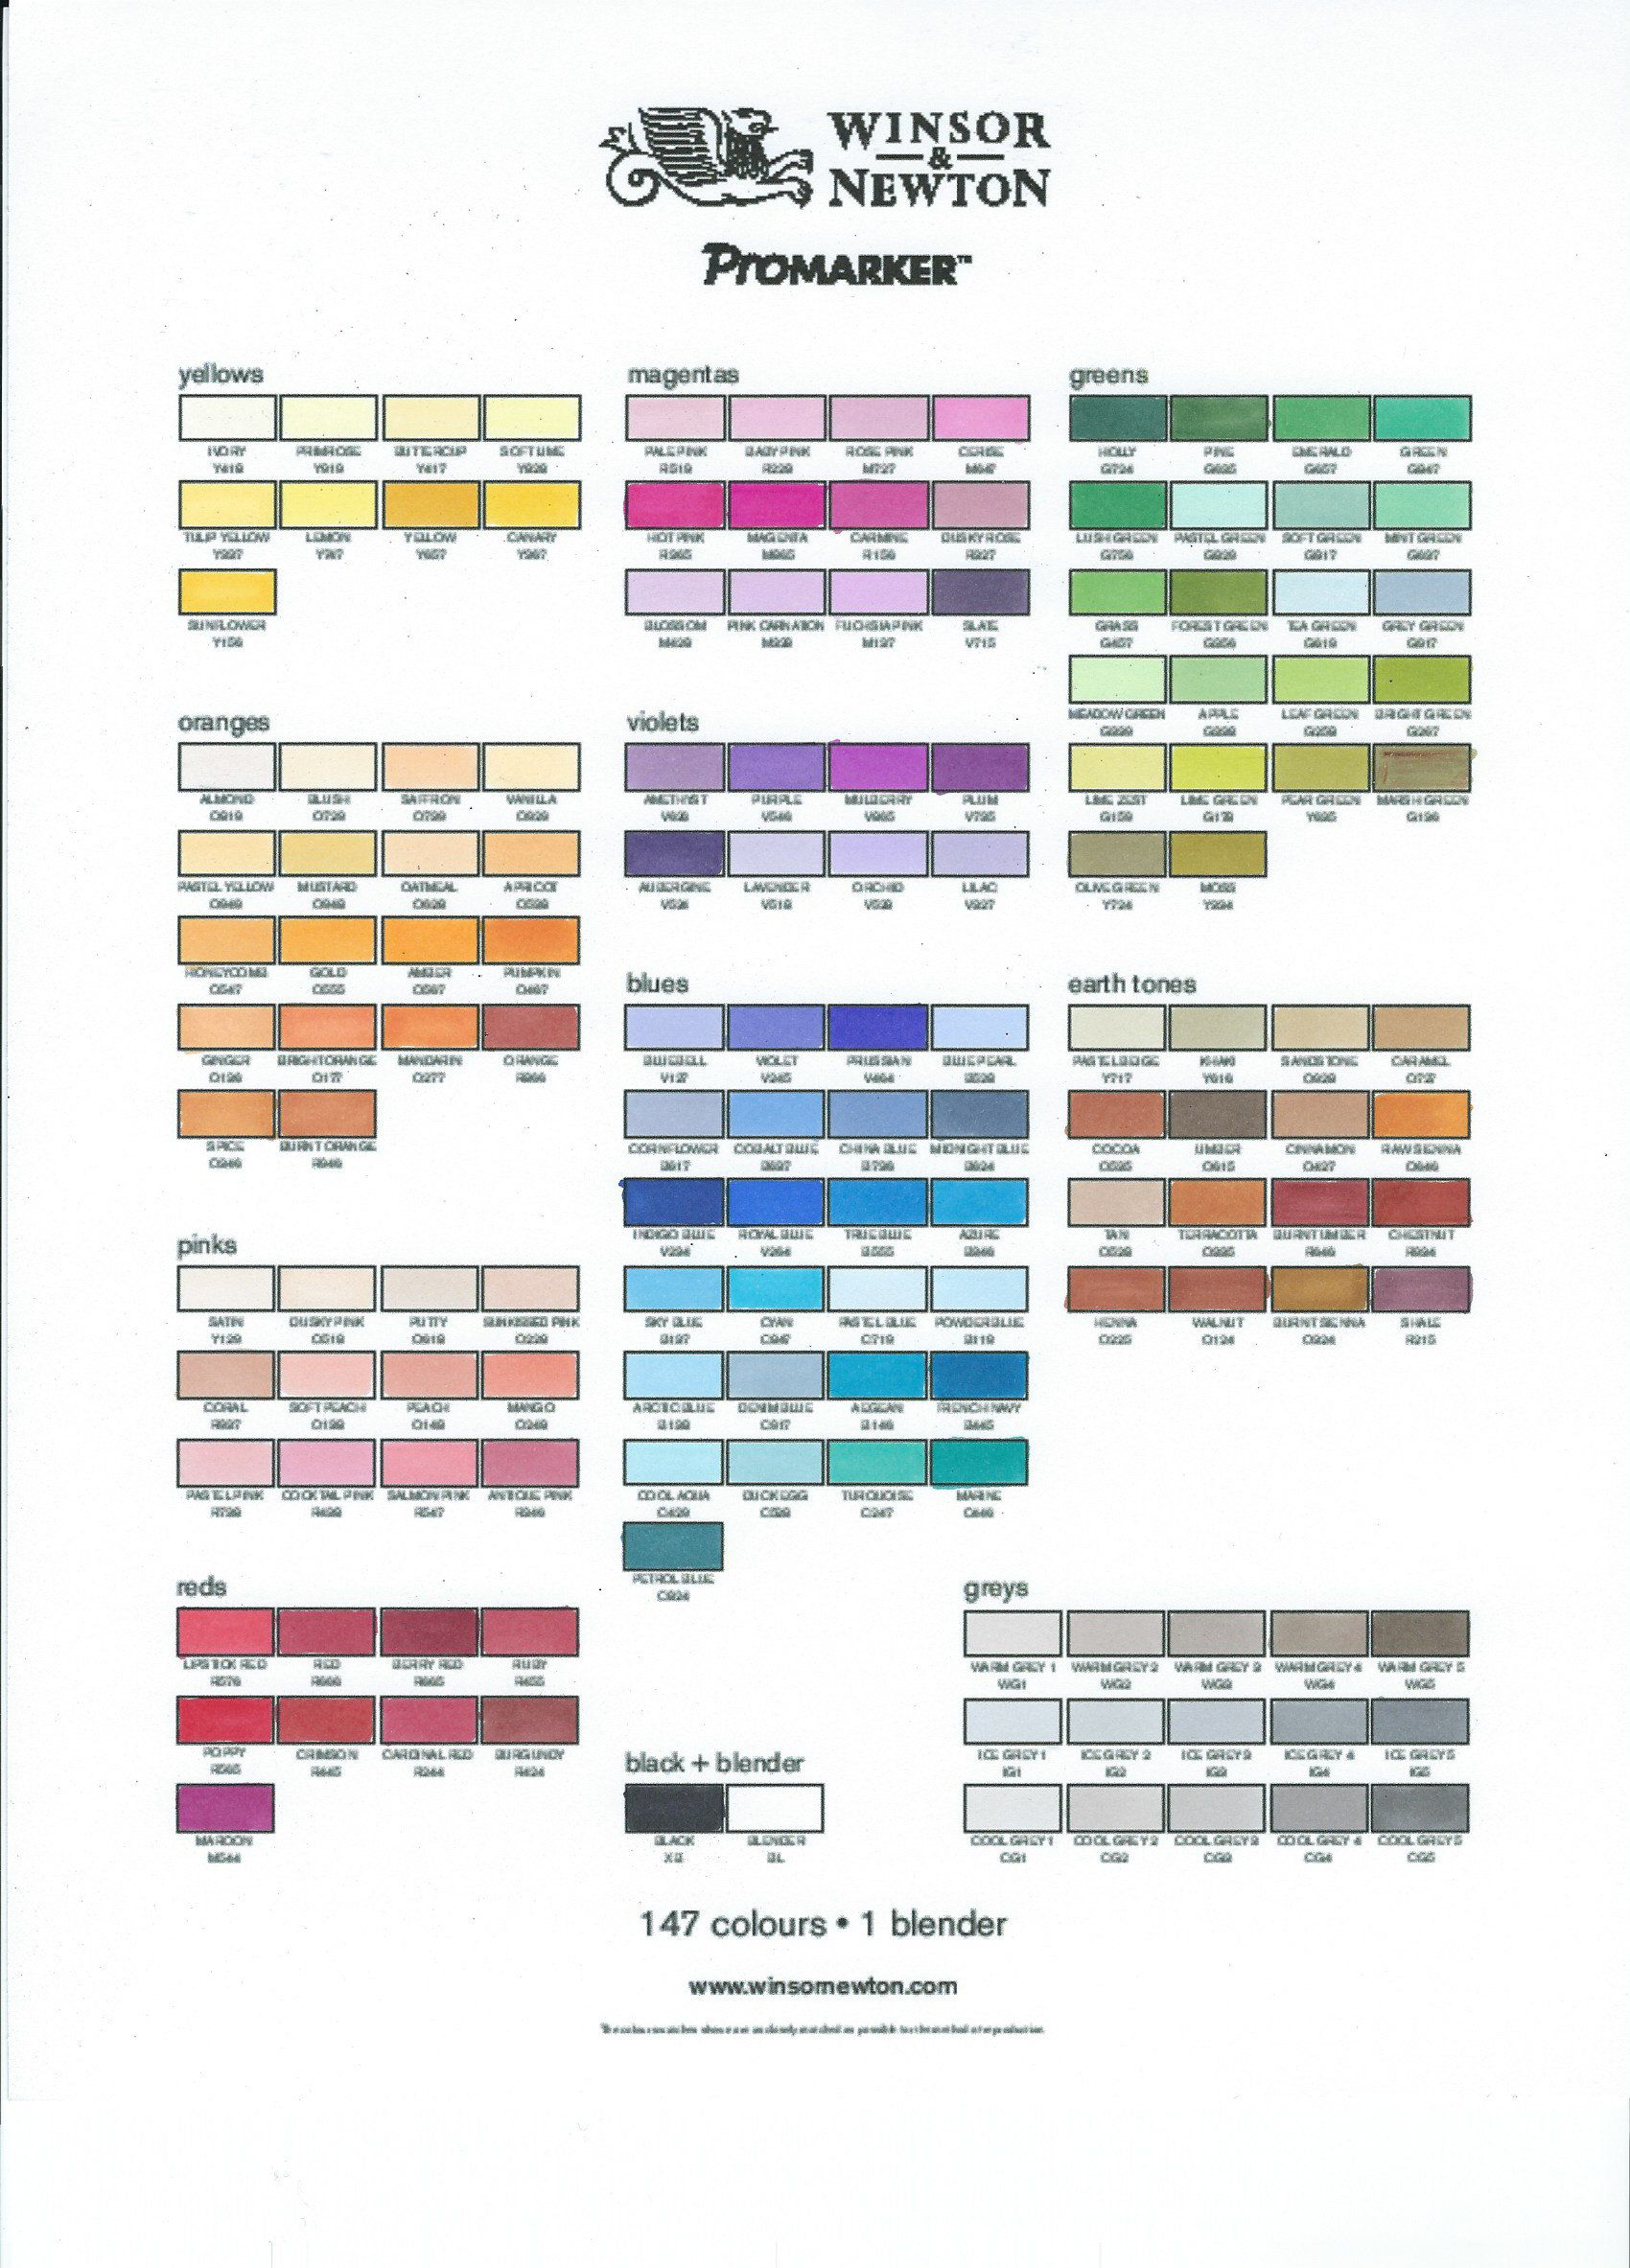 Promarker personal colour chart on express it cardsock adding promarker personal colour chart on express it cardsock nvjuhfo Choice Image